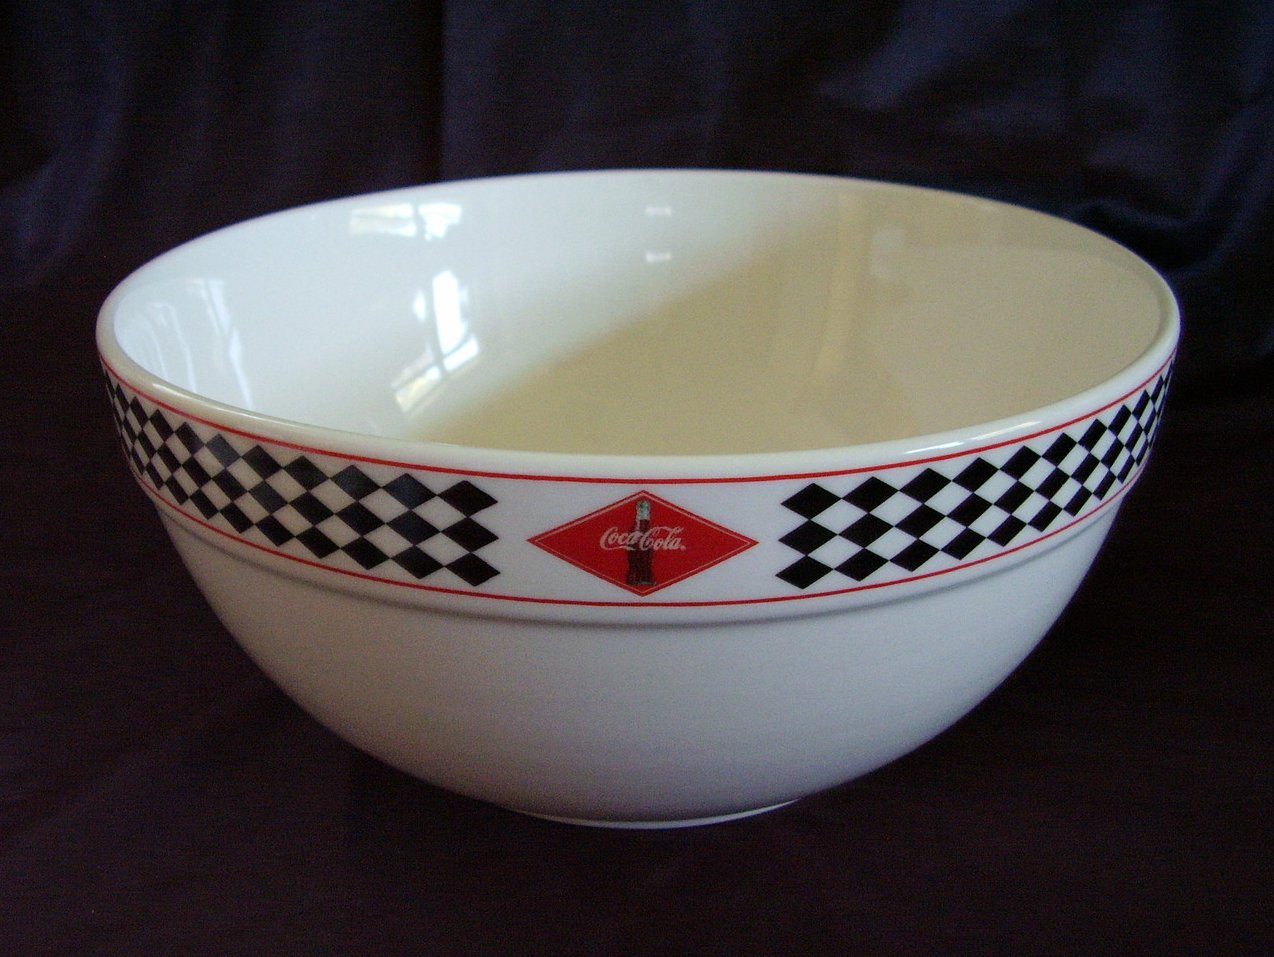 Gibson Coca Cola Mixing Bowl Red Black Diamonds Coke Bottle